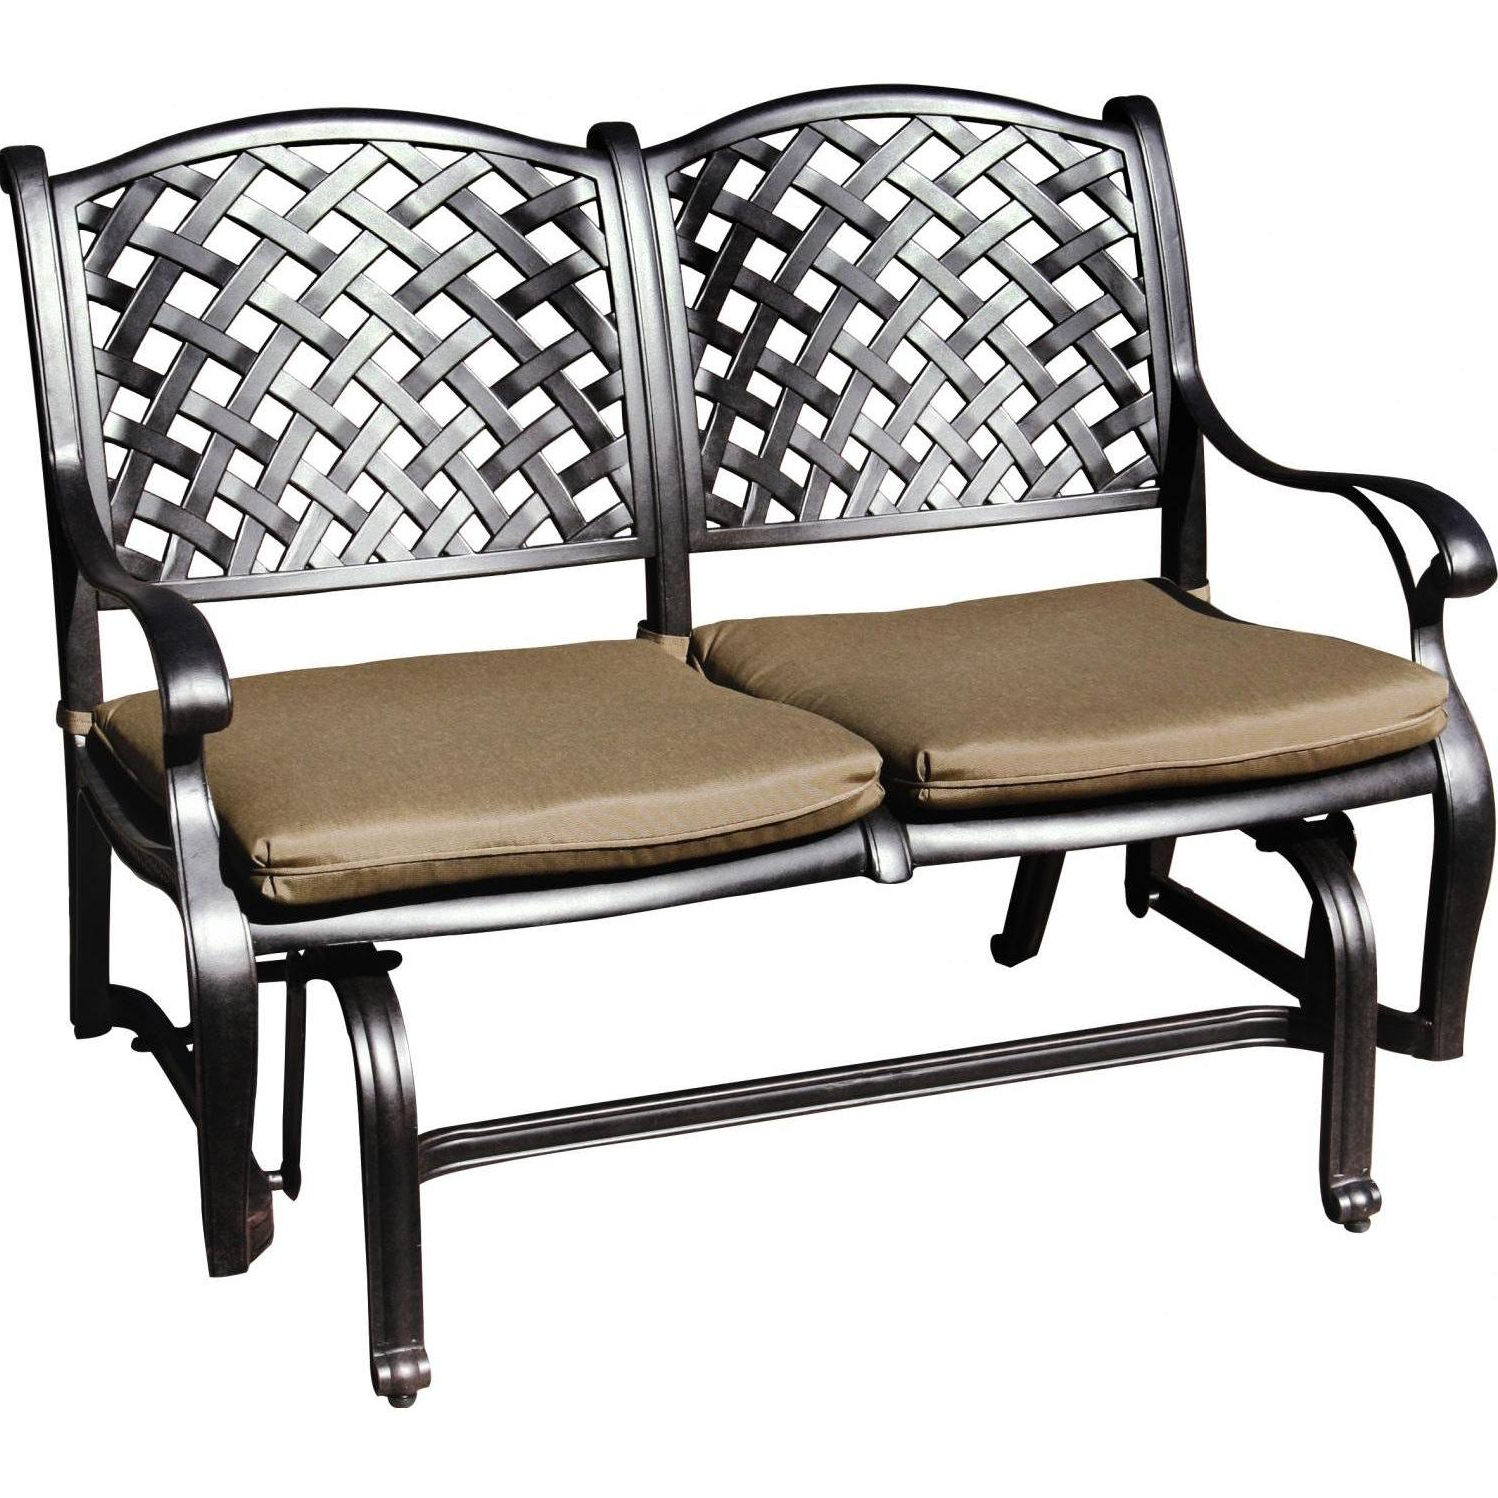 Metal Powder Coat Double Seat Glider Benches With Favorite Darlee Nassau Cast Aluminum Patio Bench Glider (Gallery 9 of 30)